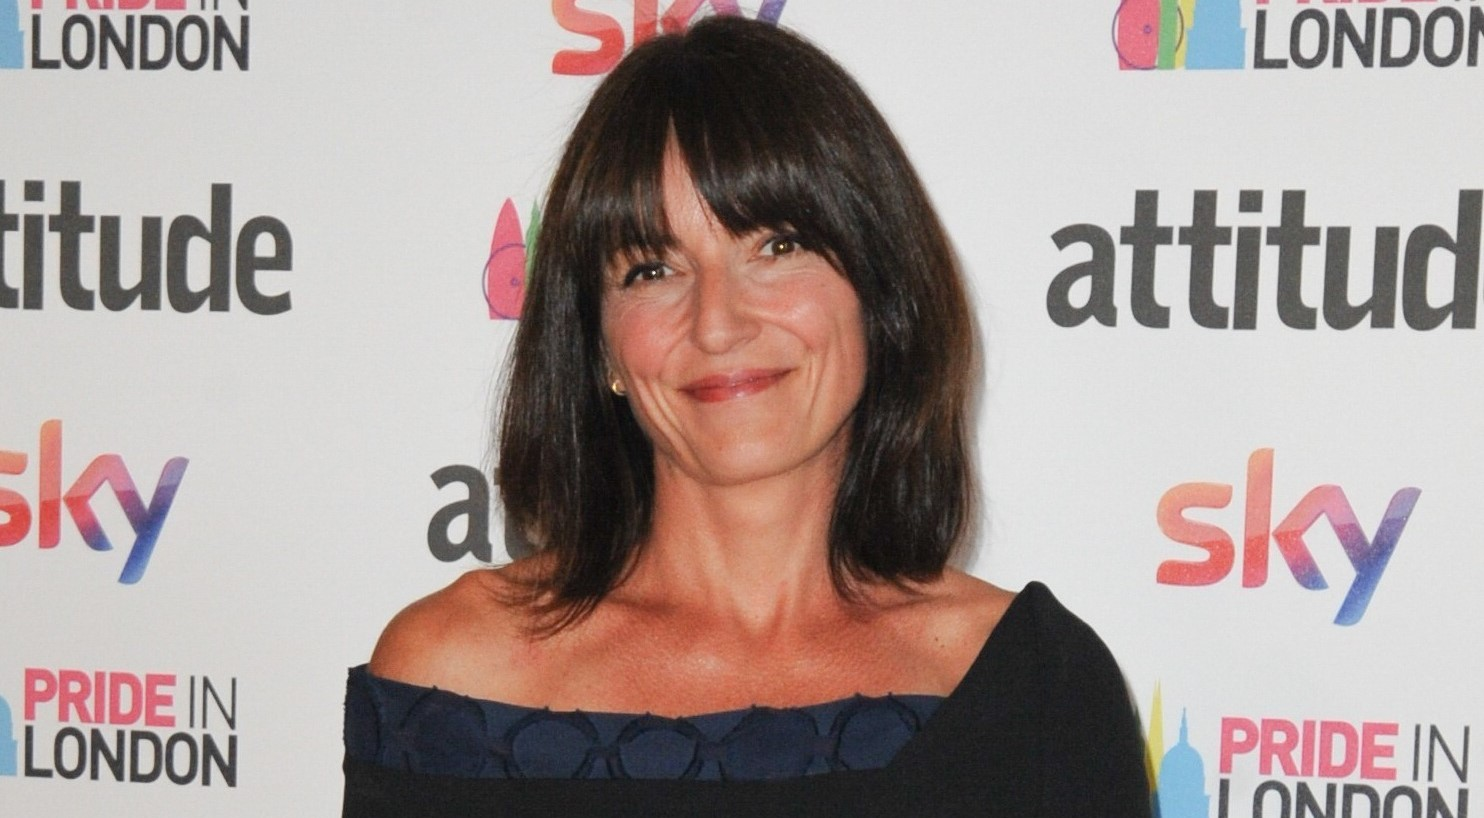 Davina McCall steps out with rumoured boyfriend after talking about 'great sex'